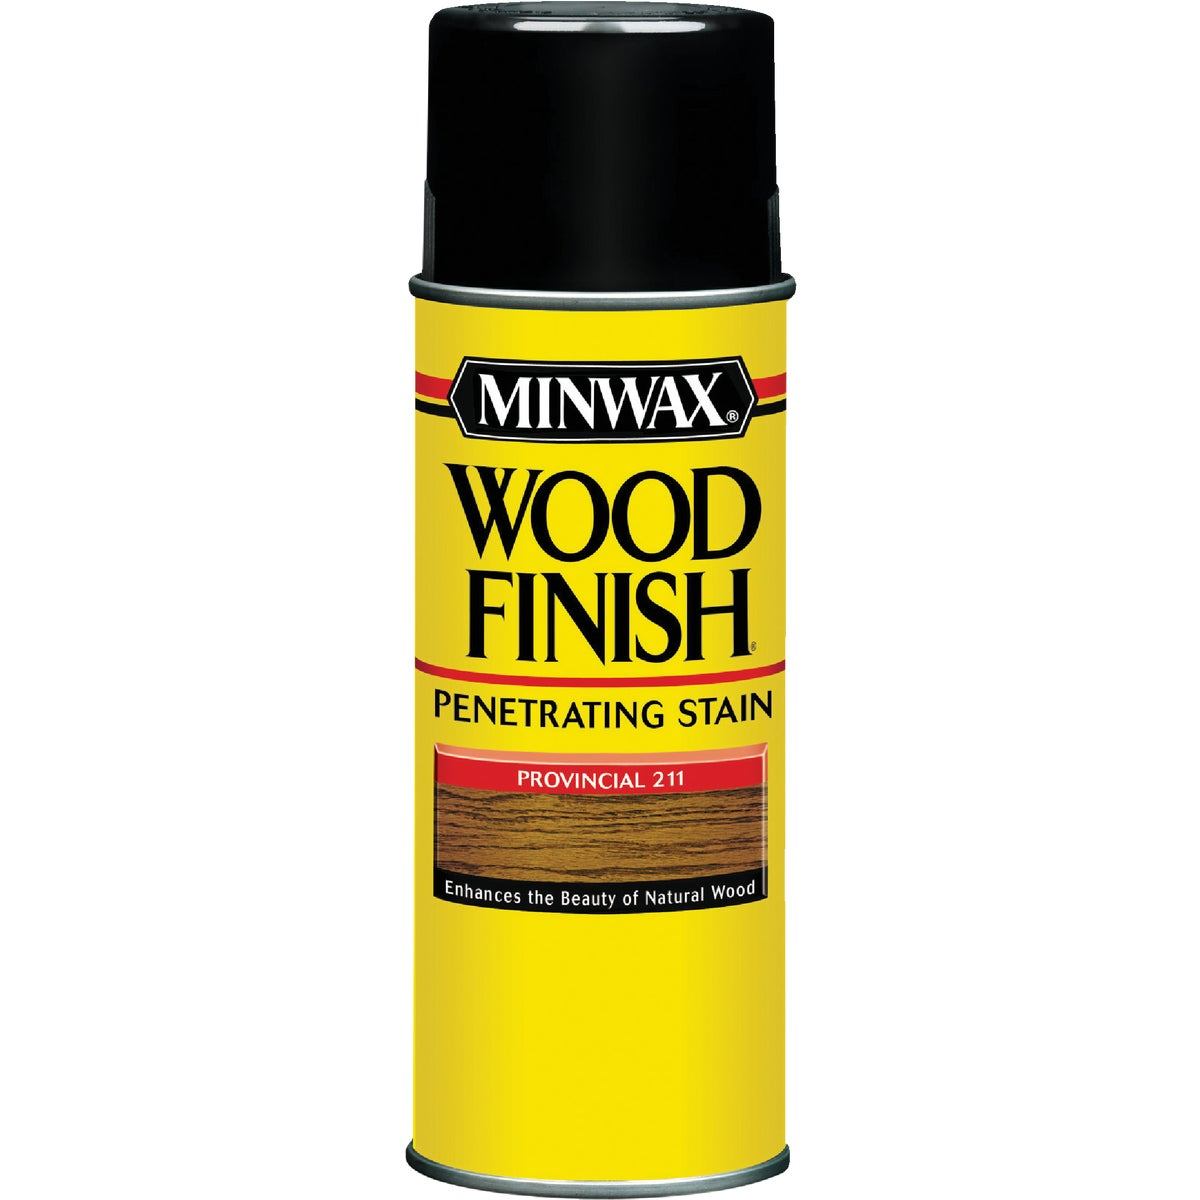 PROVINCIAL SPRAY STAIN - 32110 by Minwax Company